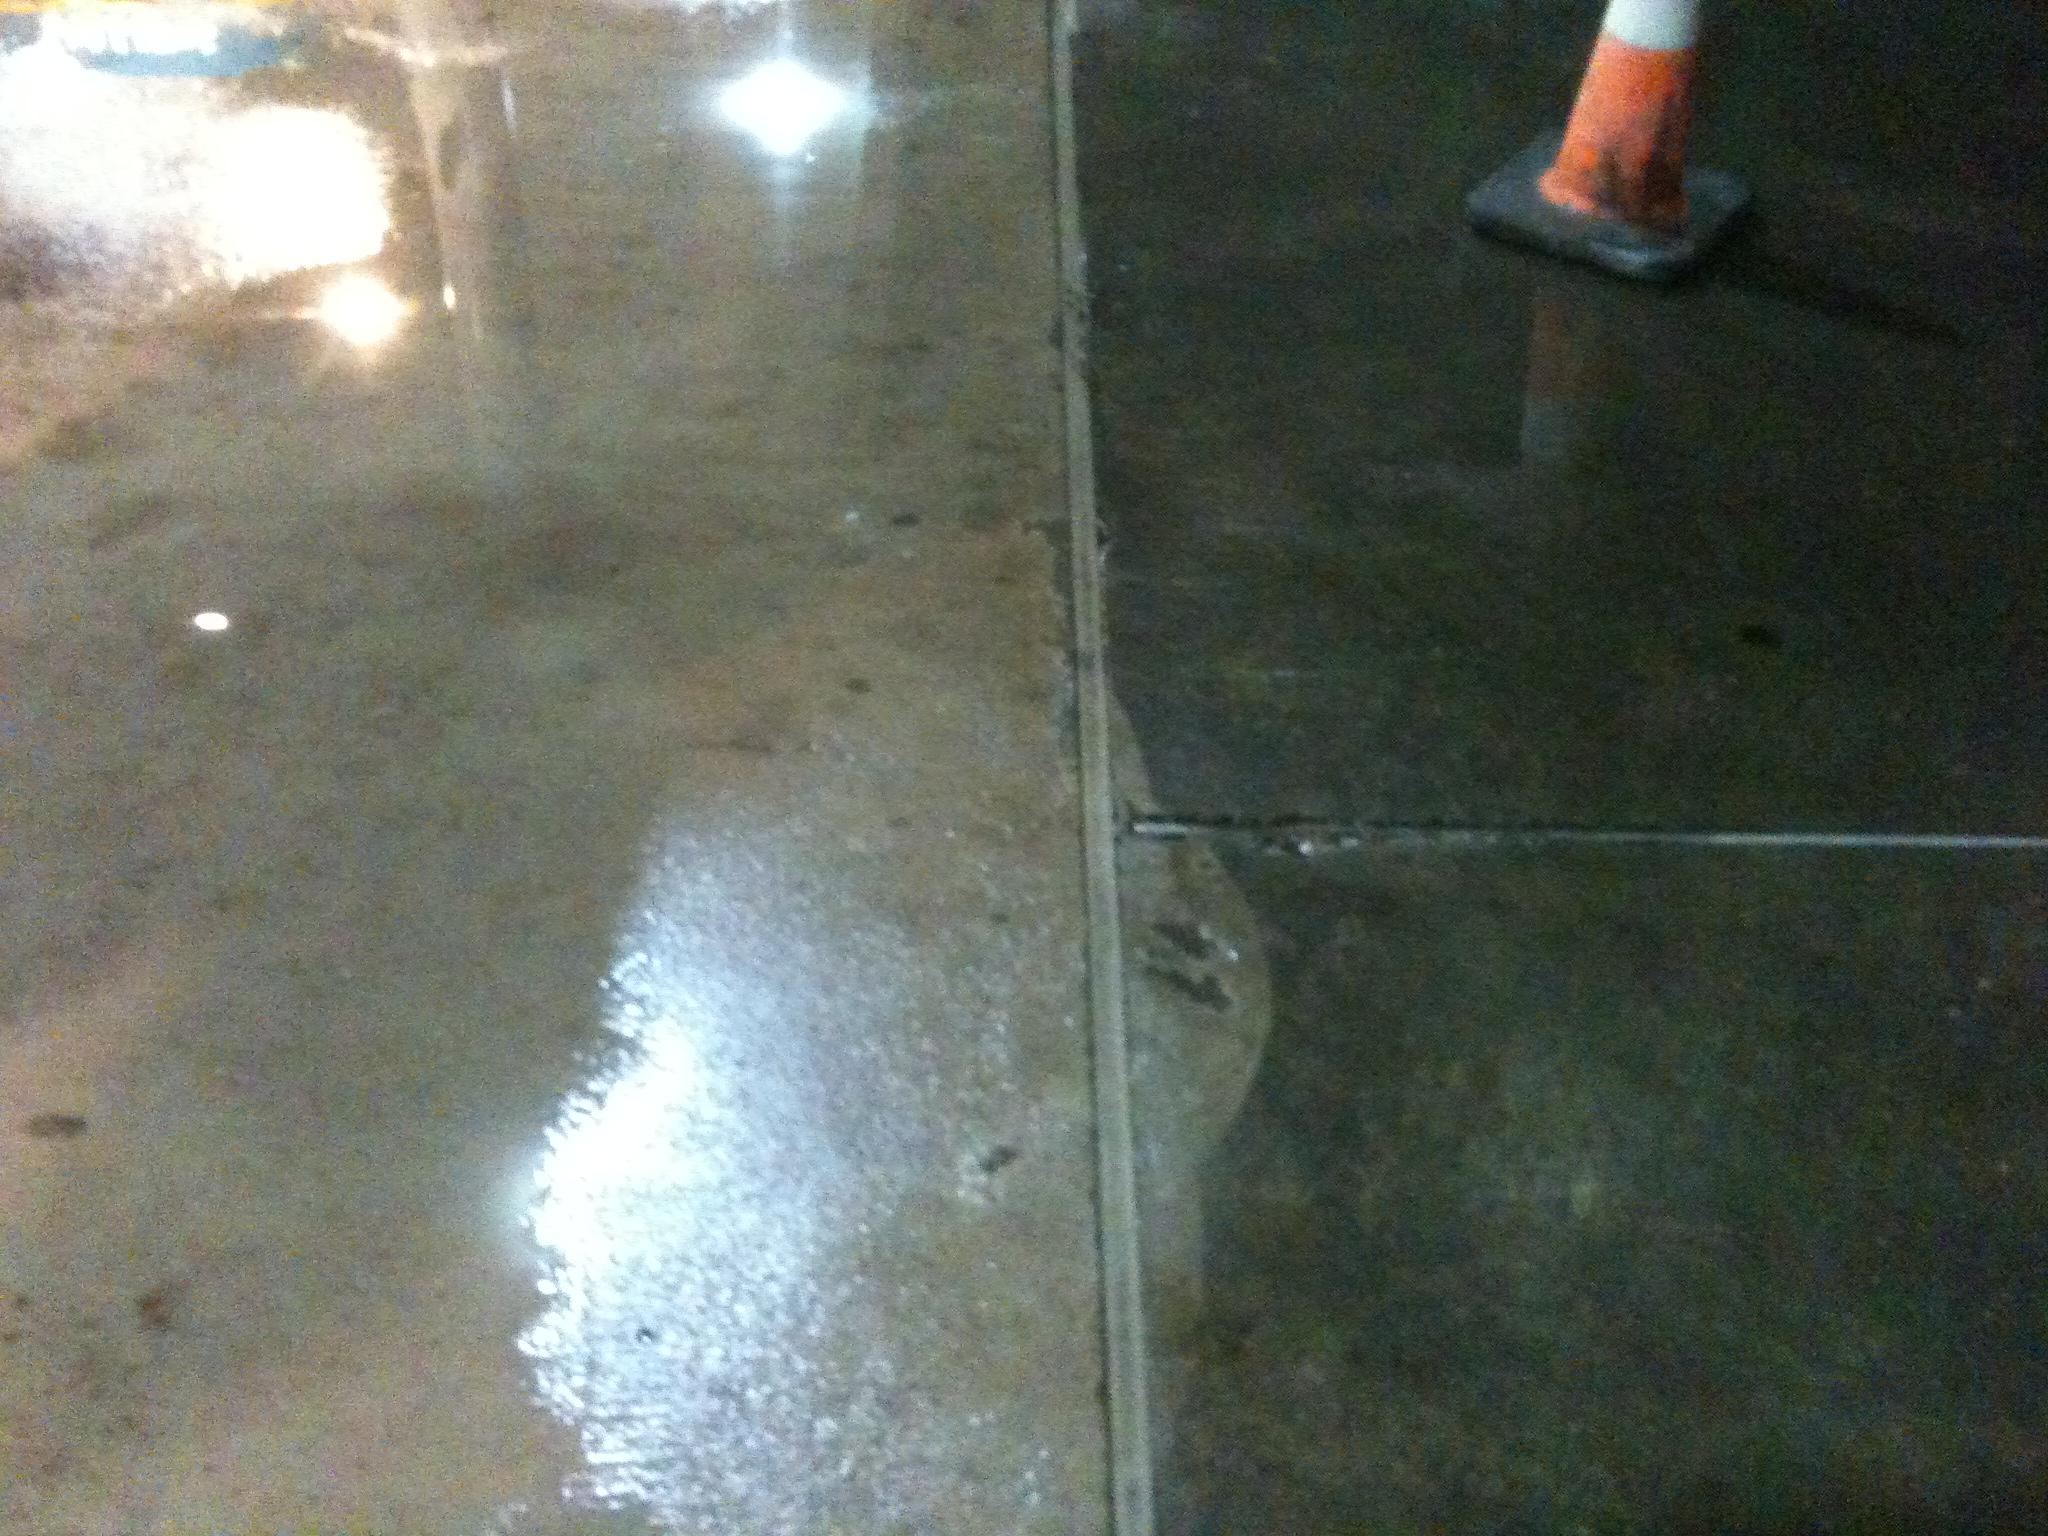 Green Cleaning Services LLC image 35